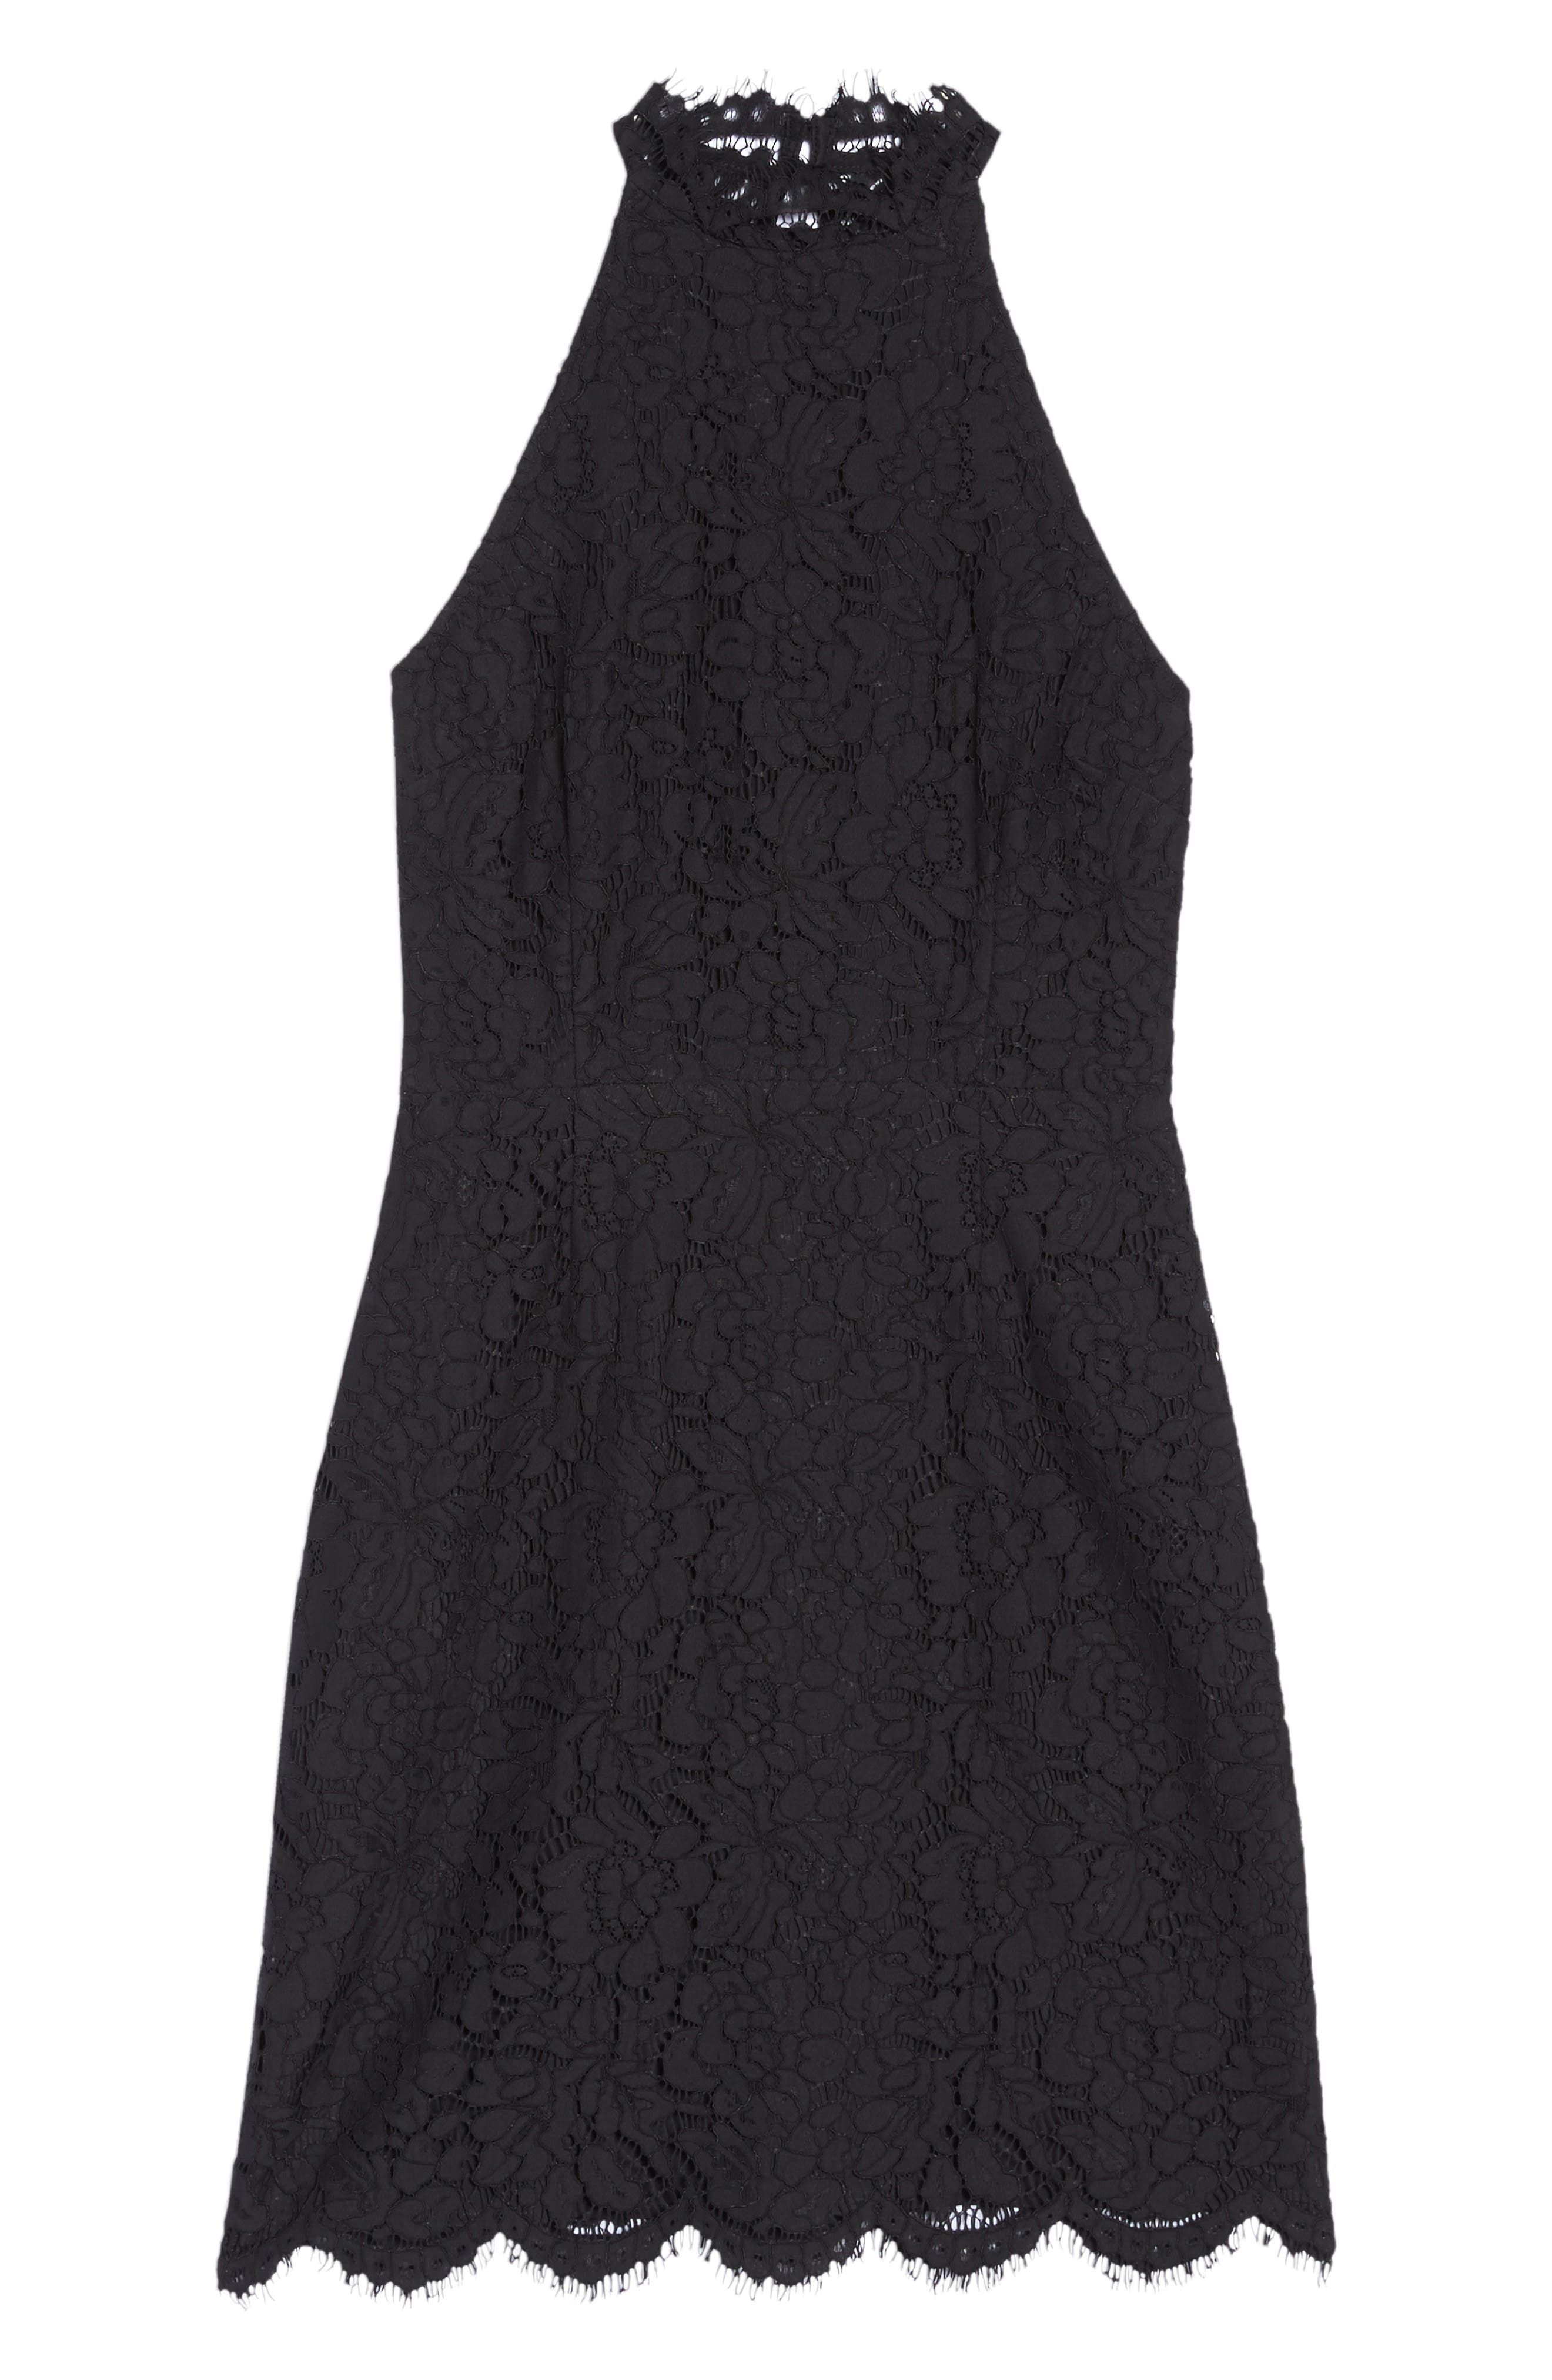 BB DAKOTA, Cara High Neck Lace Cocktail Dress, Alternate thumbnail 6, color, 001